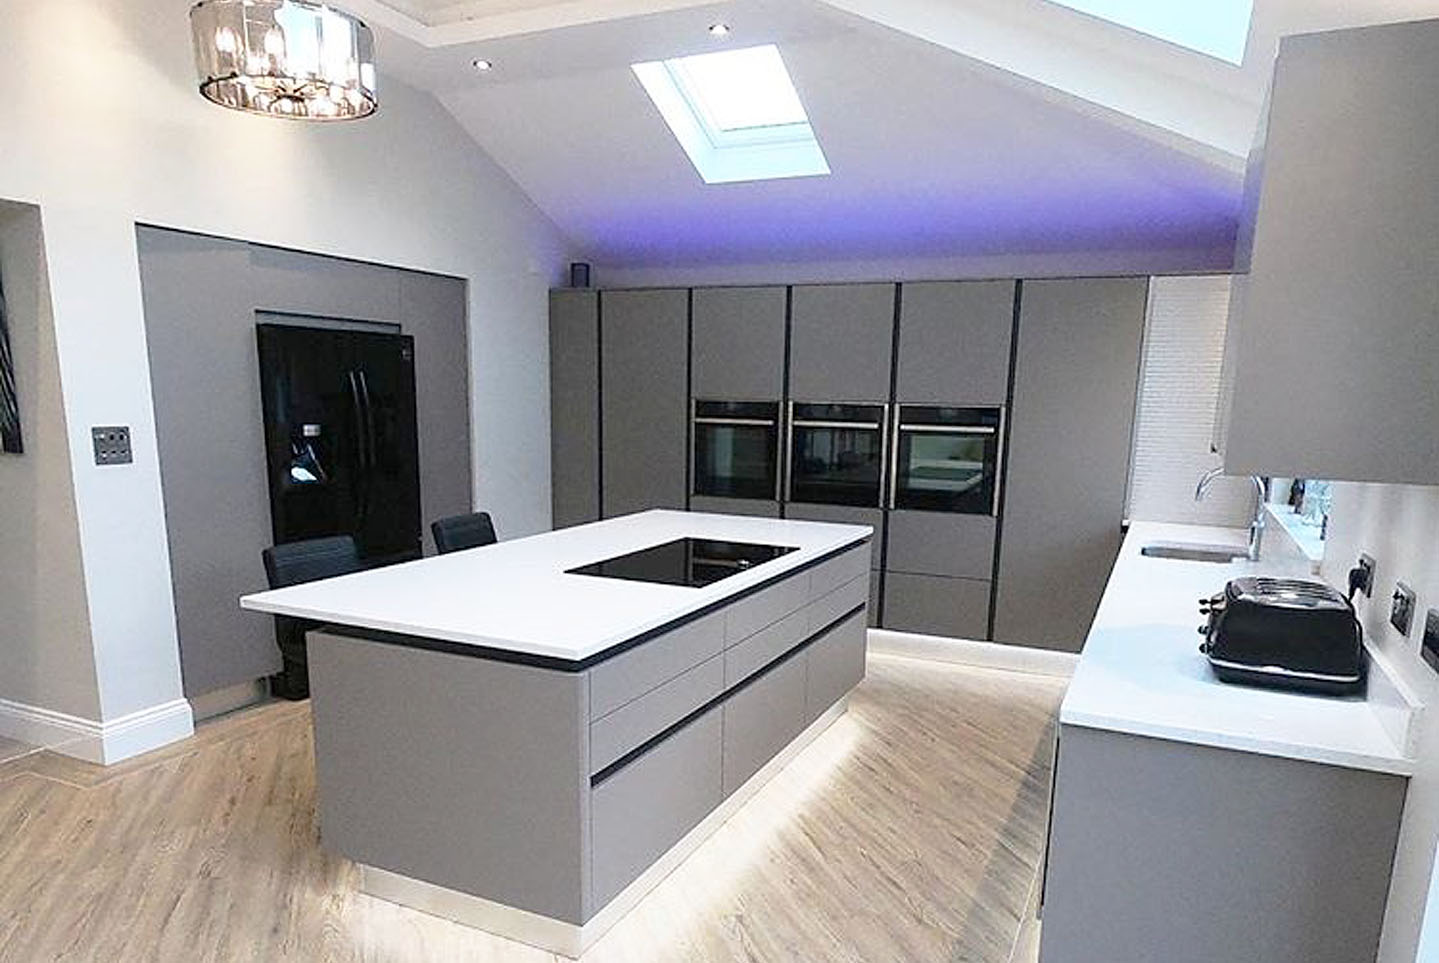 ... Formby Zurfiz True Handleless Kitchen